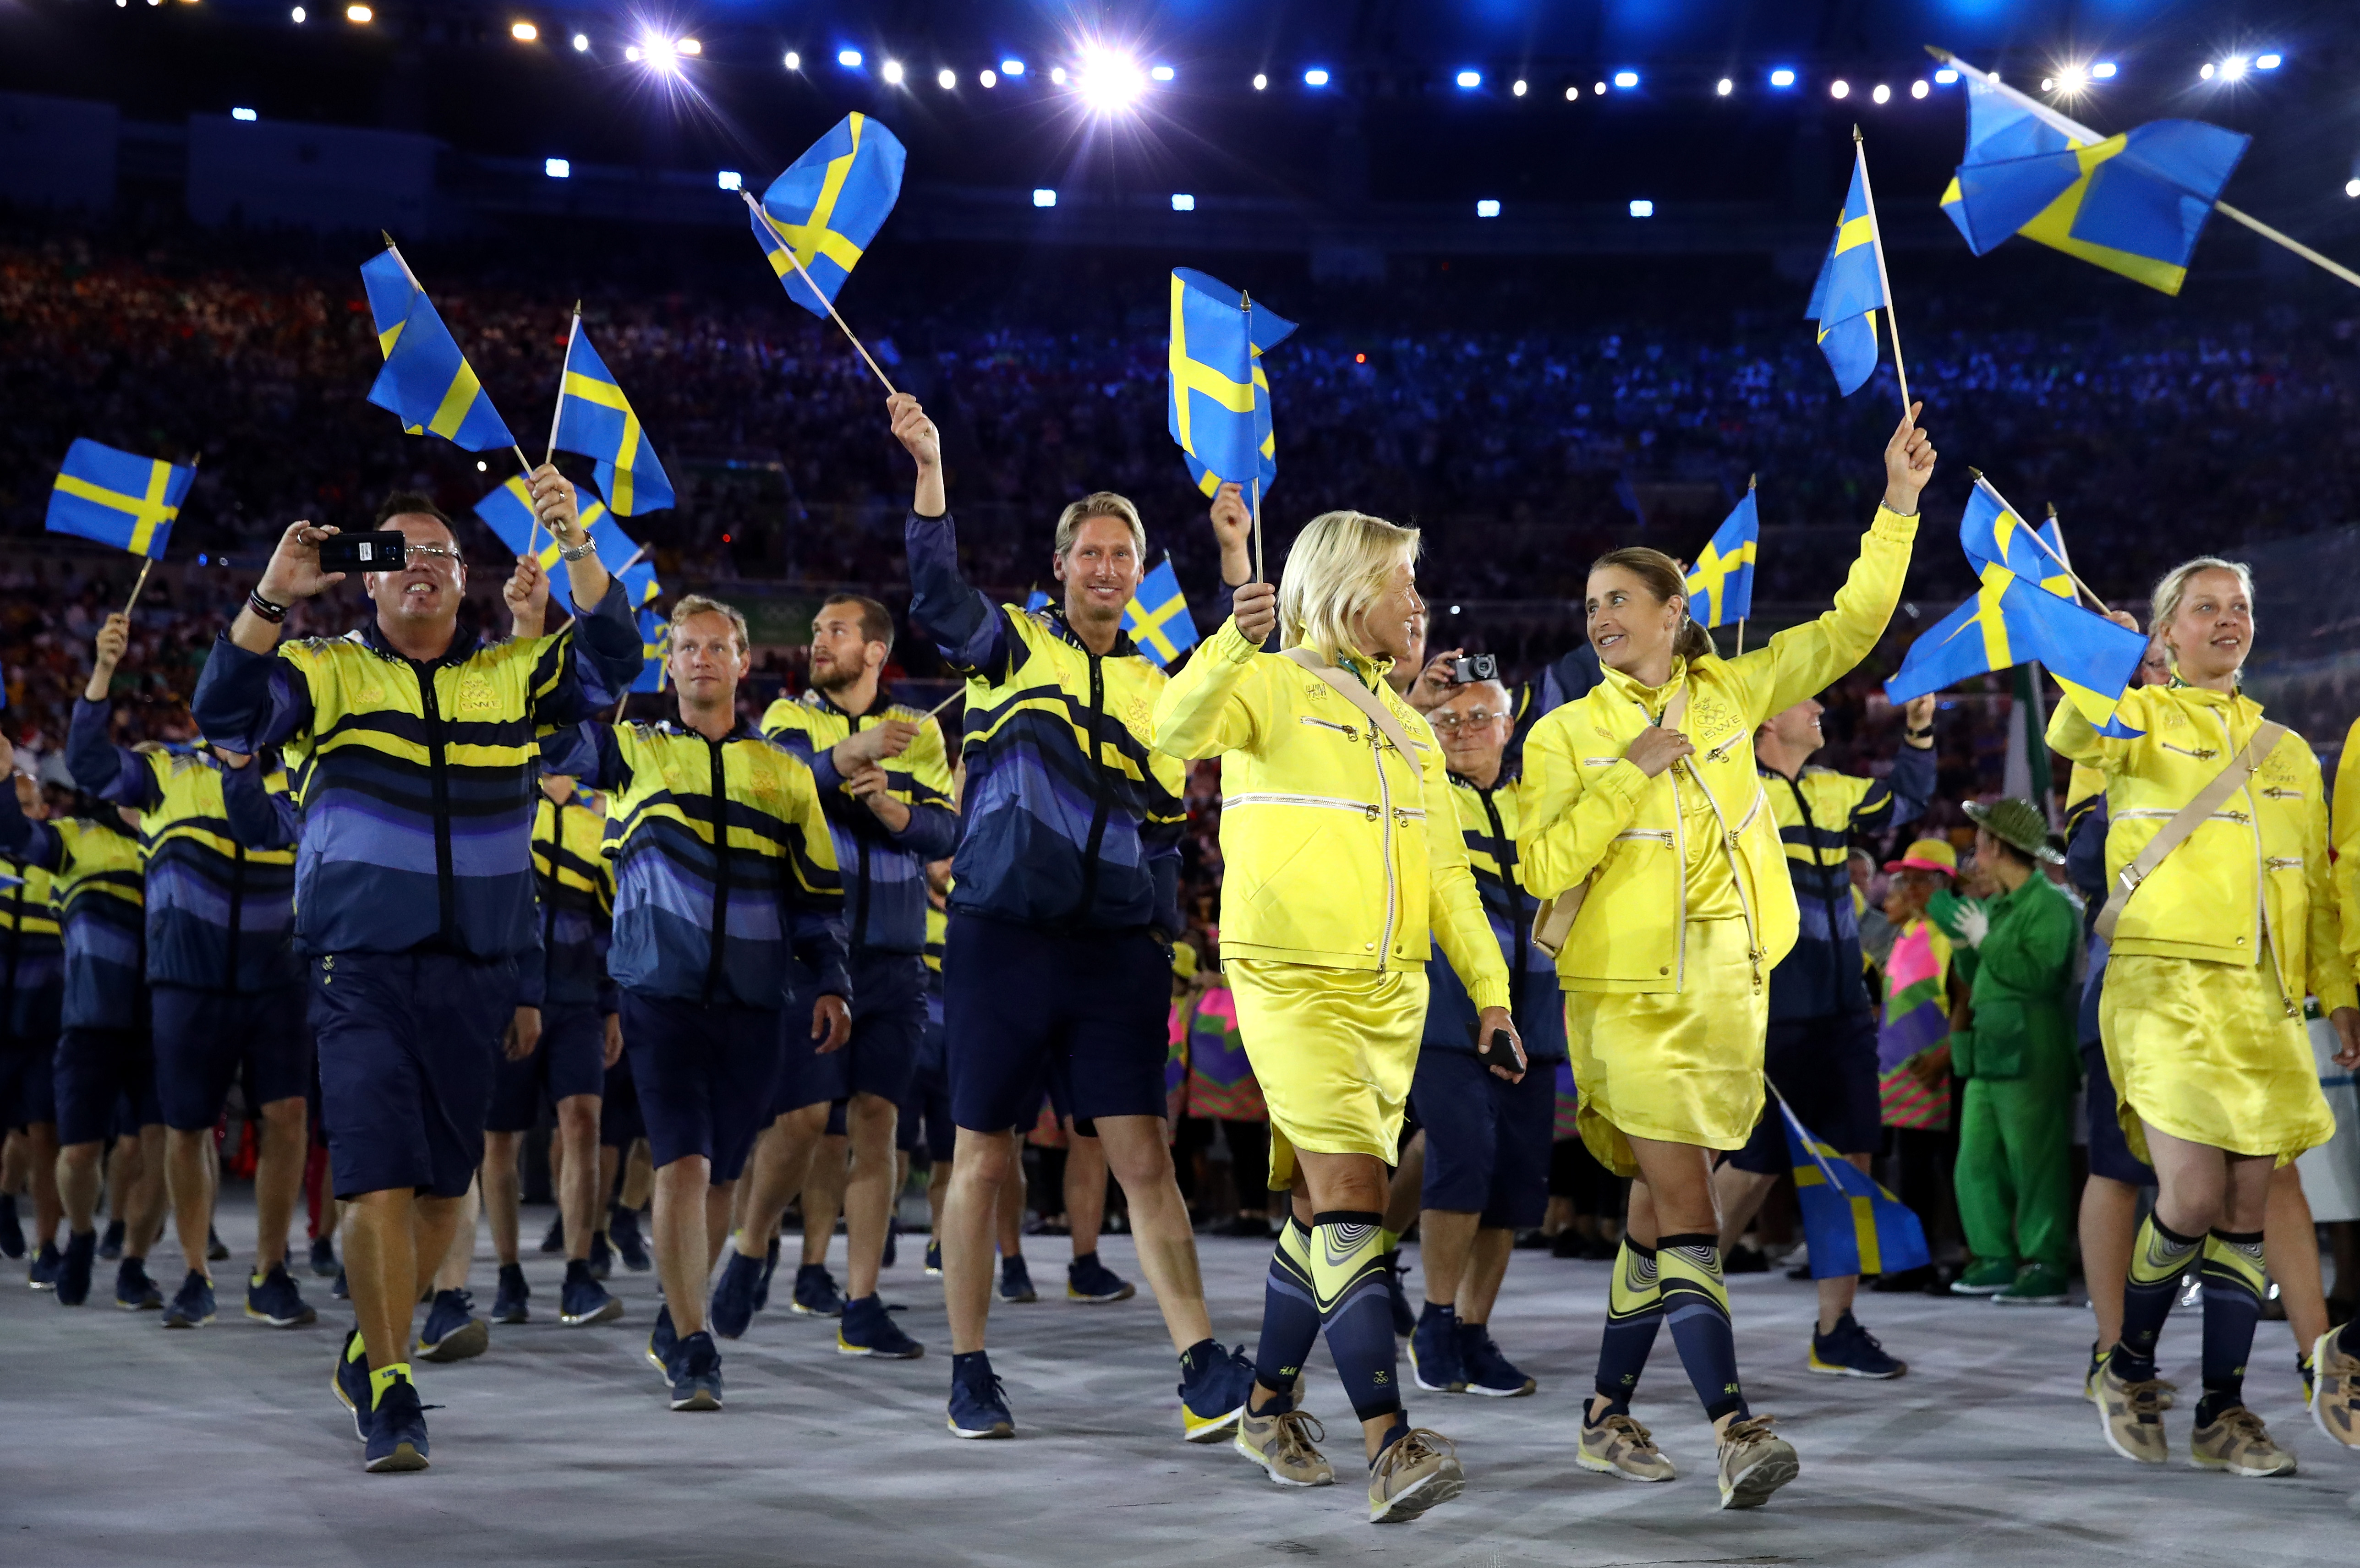 RIO DE JANEIRO, BRAZIL - AUGUST 05: Members of the Sweden team take part during the Opening Ceremony of the Rio 2016 Olympic Games at Maracana Stadium on August 5, 2016 in Rio de Janeiro, Brazil. (Photo by Cameron Spencer/Getty Images)